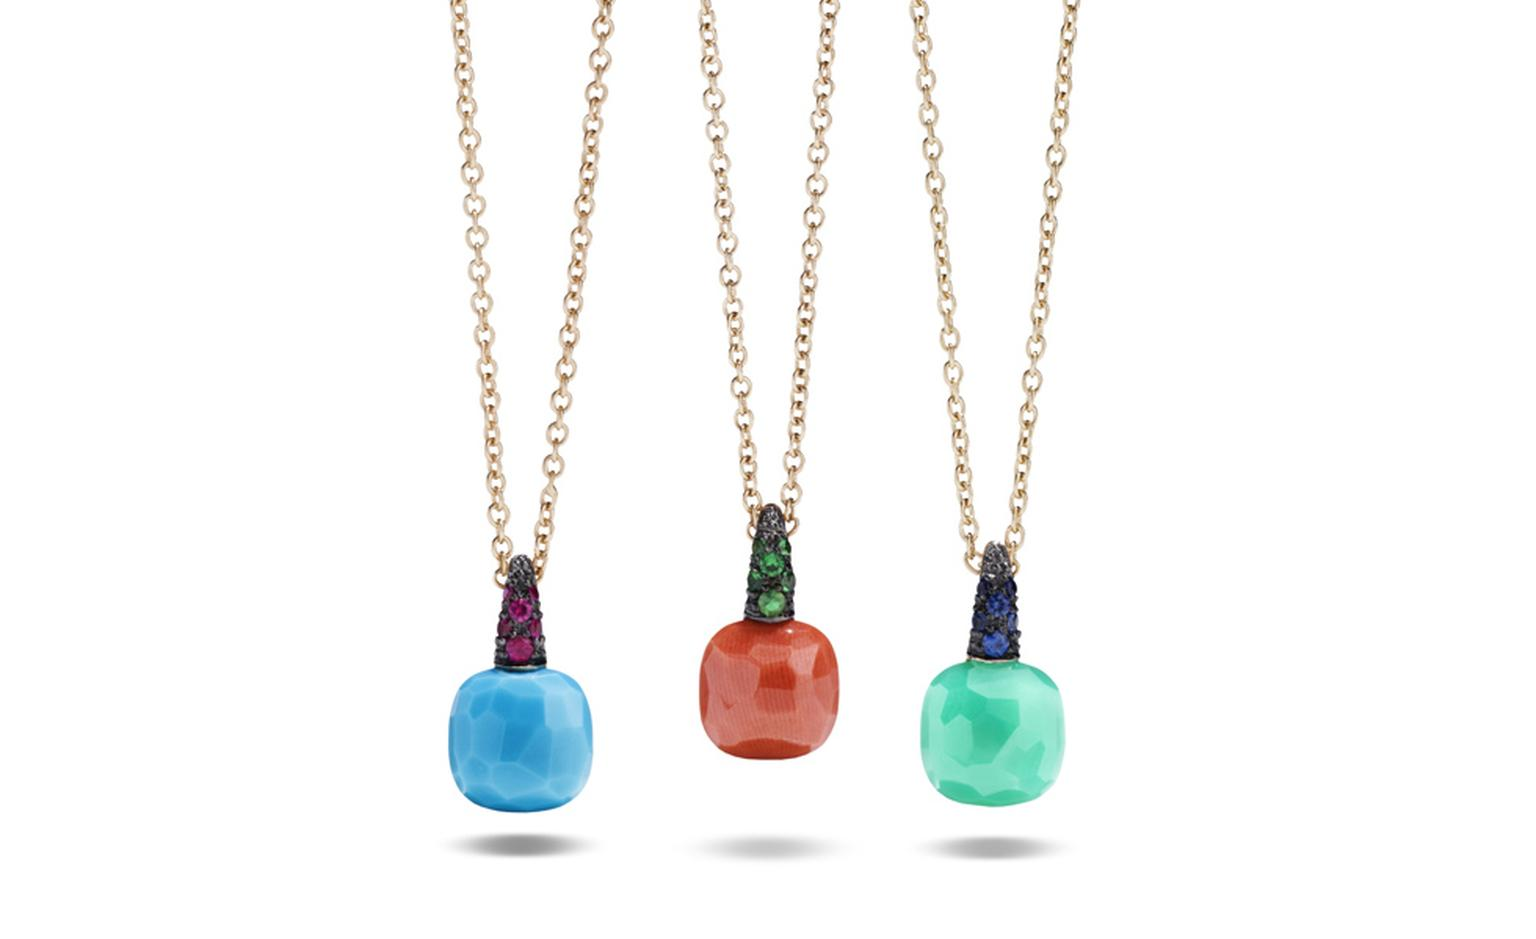 POMELLATO, Capri pendant Rose gold, turquoise and rubies, coral and tsavorites, chrysoprase and blue sapphires. Chain and pendant, starting from £1,340